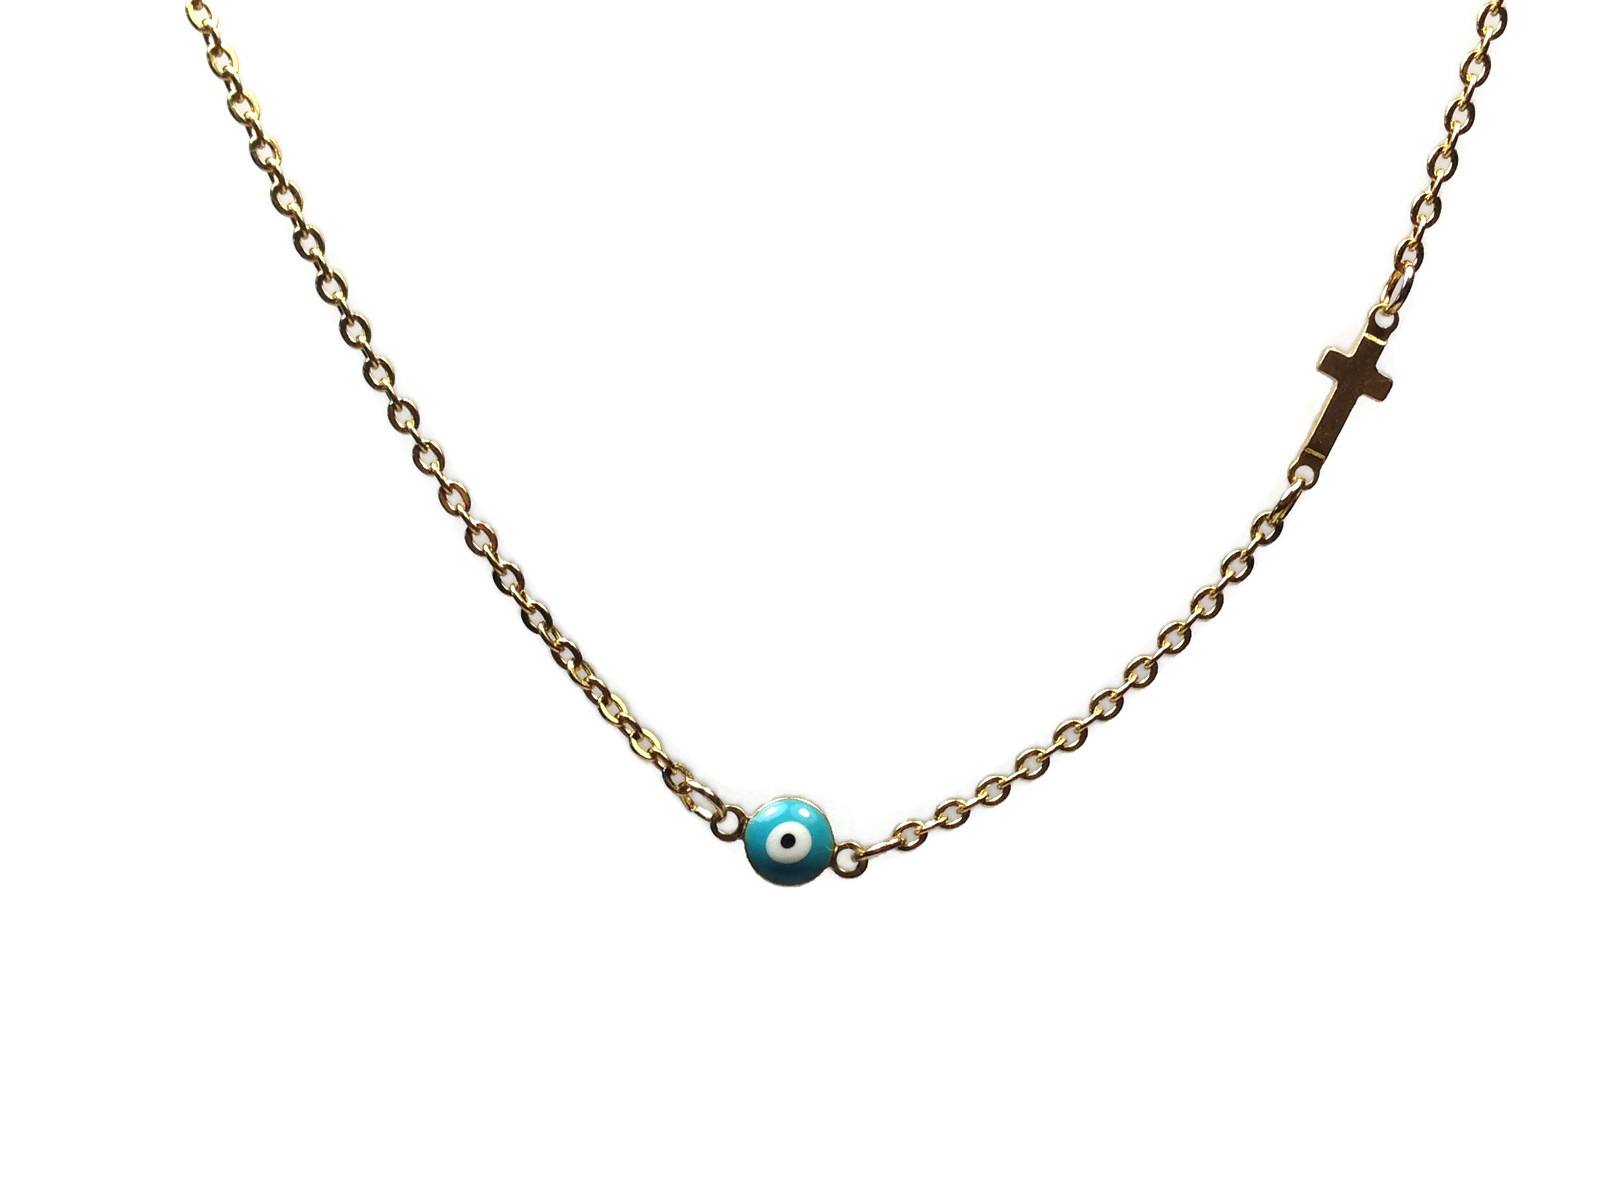 evil eye cross necklace in gold plated stainless steel